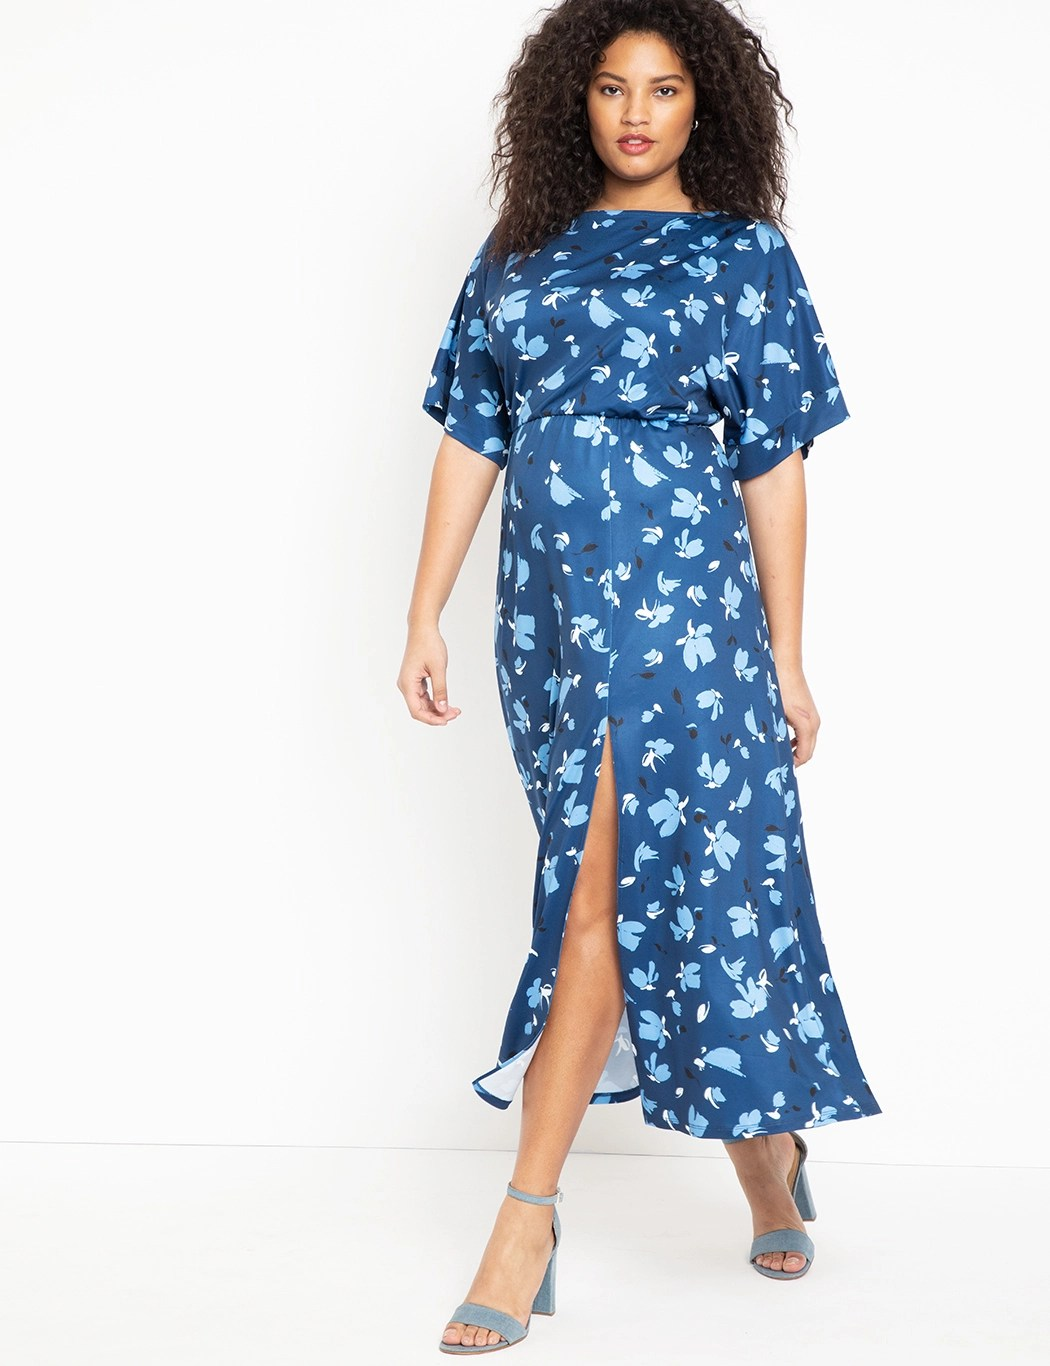 Dolman Sleev Maxi Dress with Slit 6